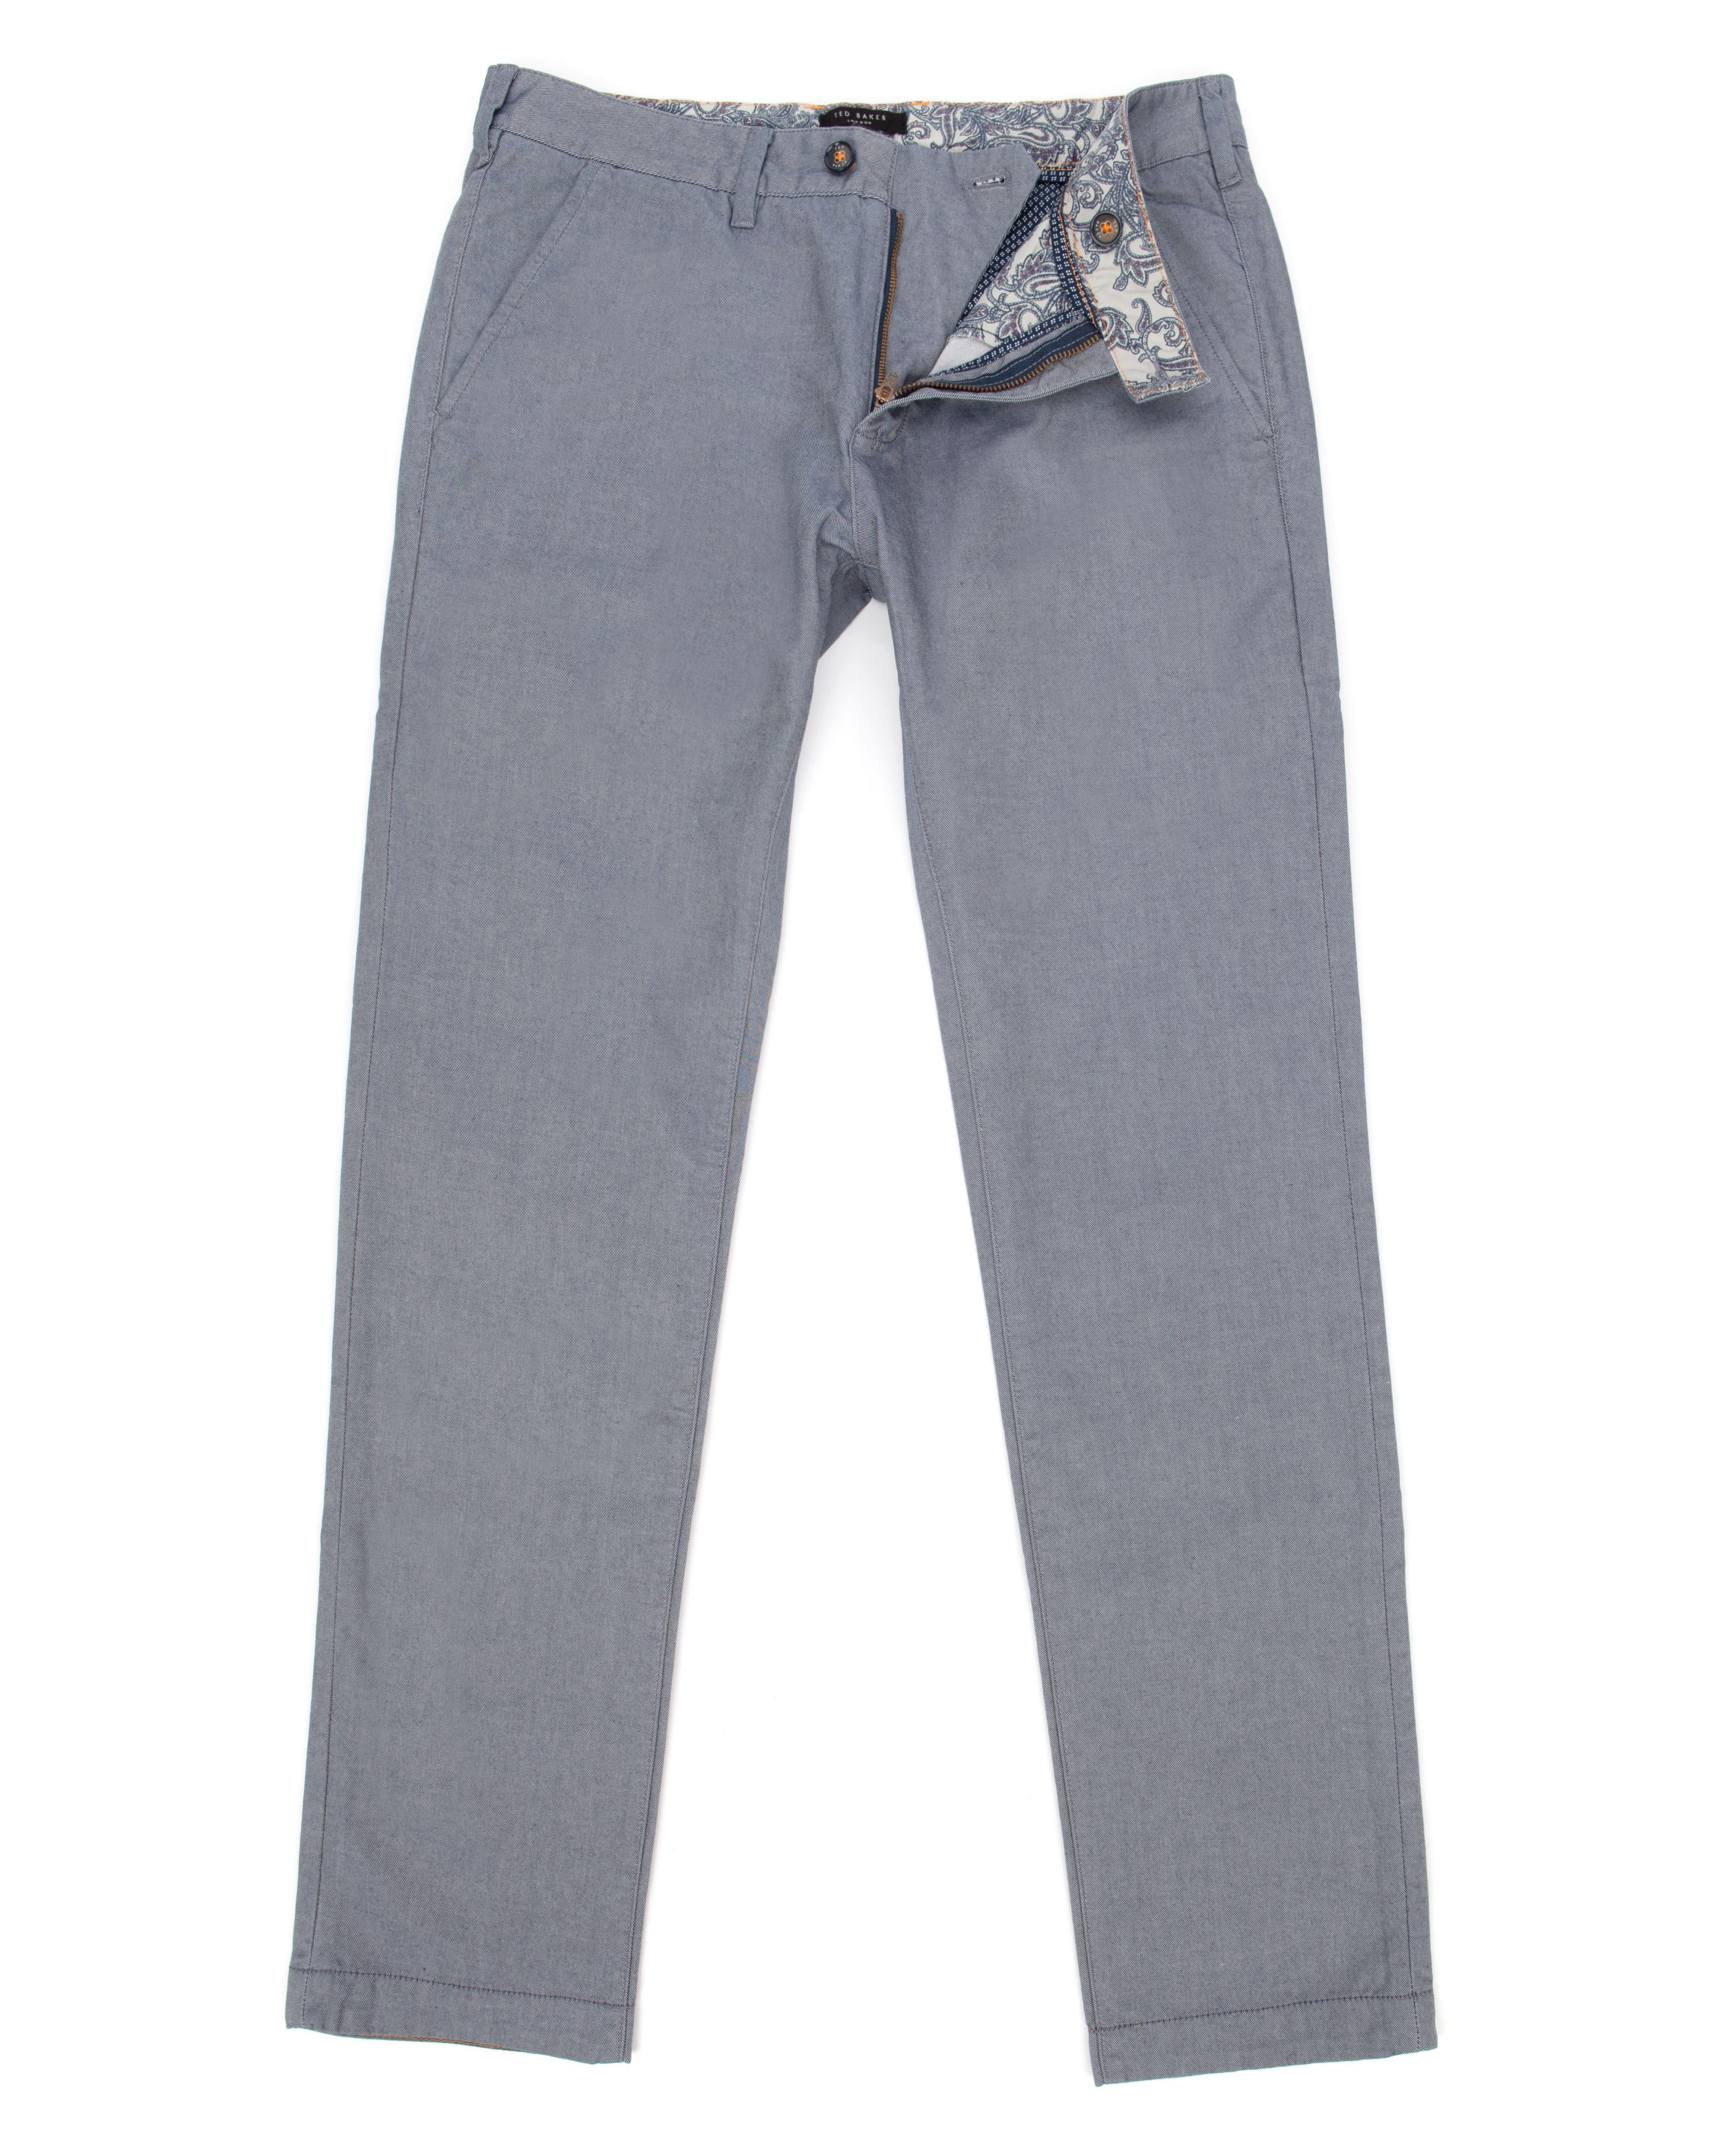 Twiltro cotton twill trouser